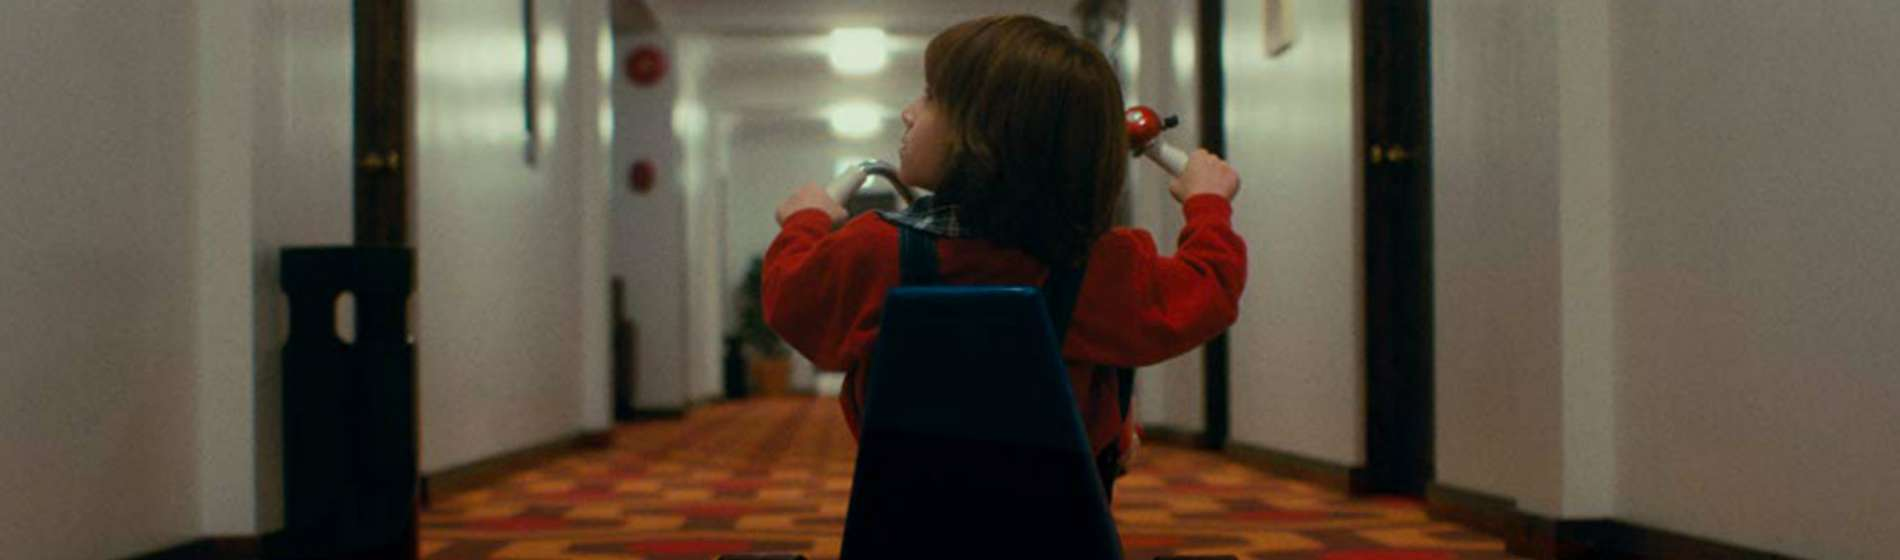 doctor-sleep-young-danny-torrance-feature-image